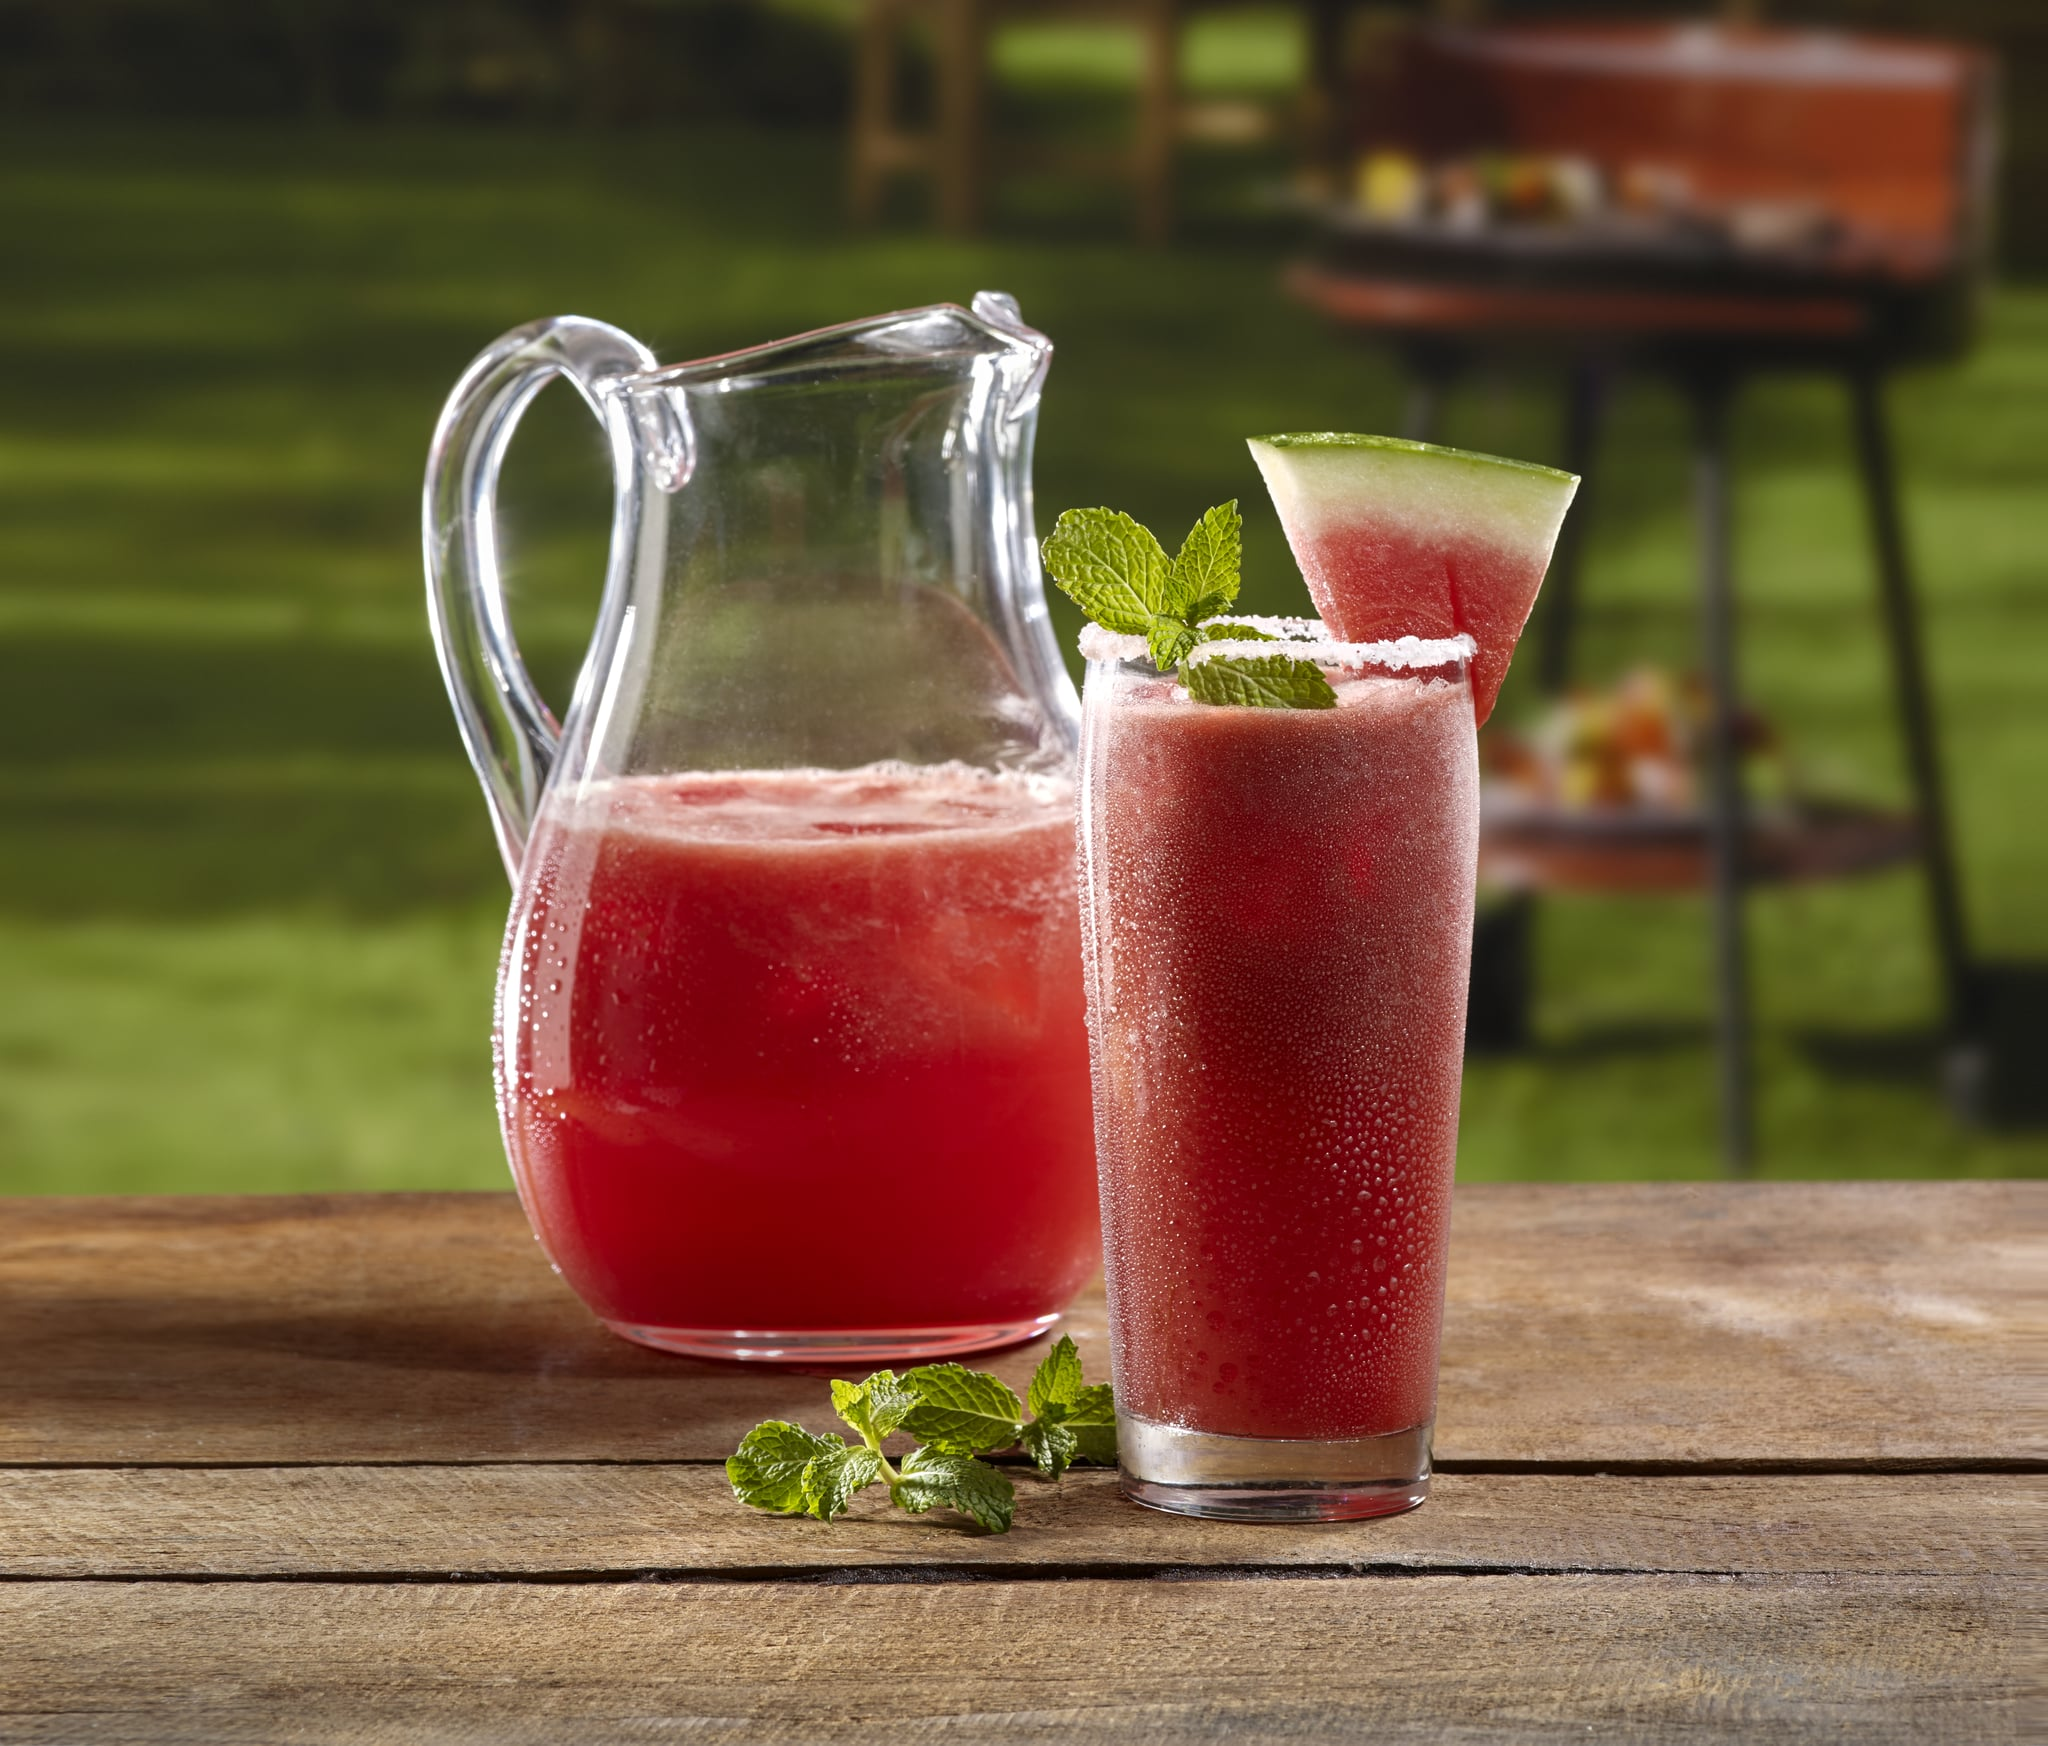 Refreshing Doesn't Even Begin to Describe This Watermelon-Spiked Margarita